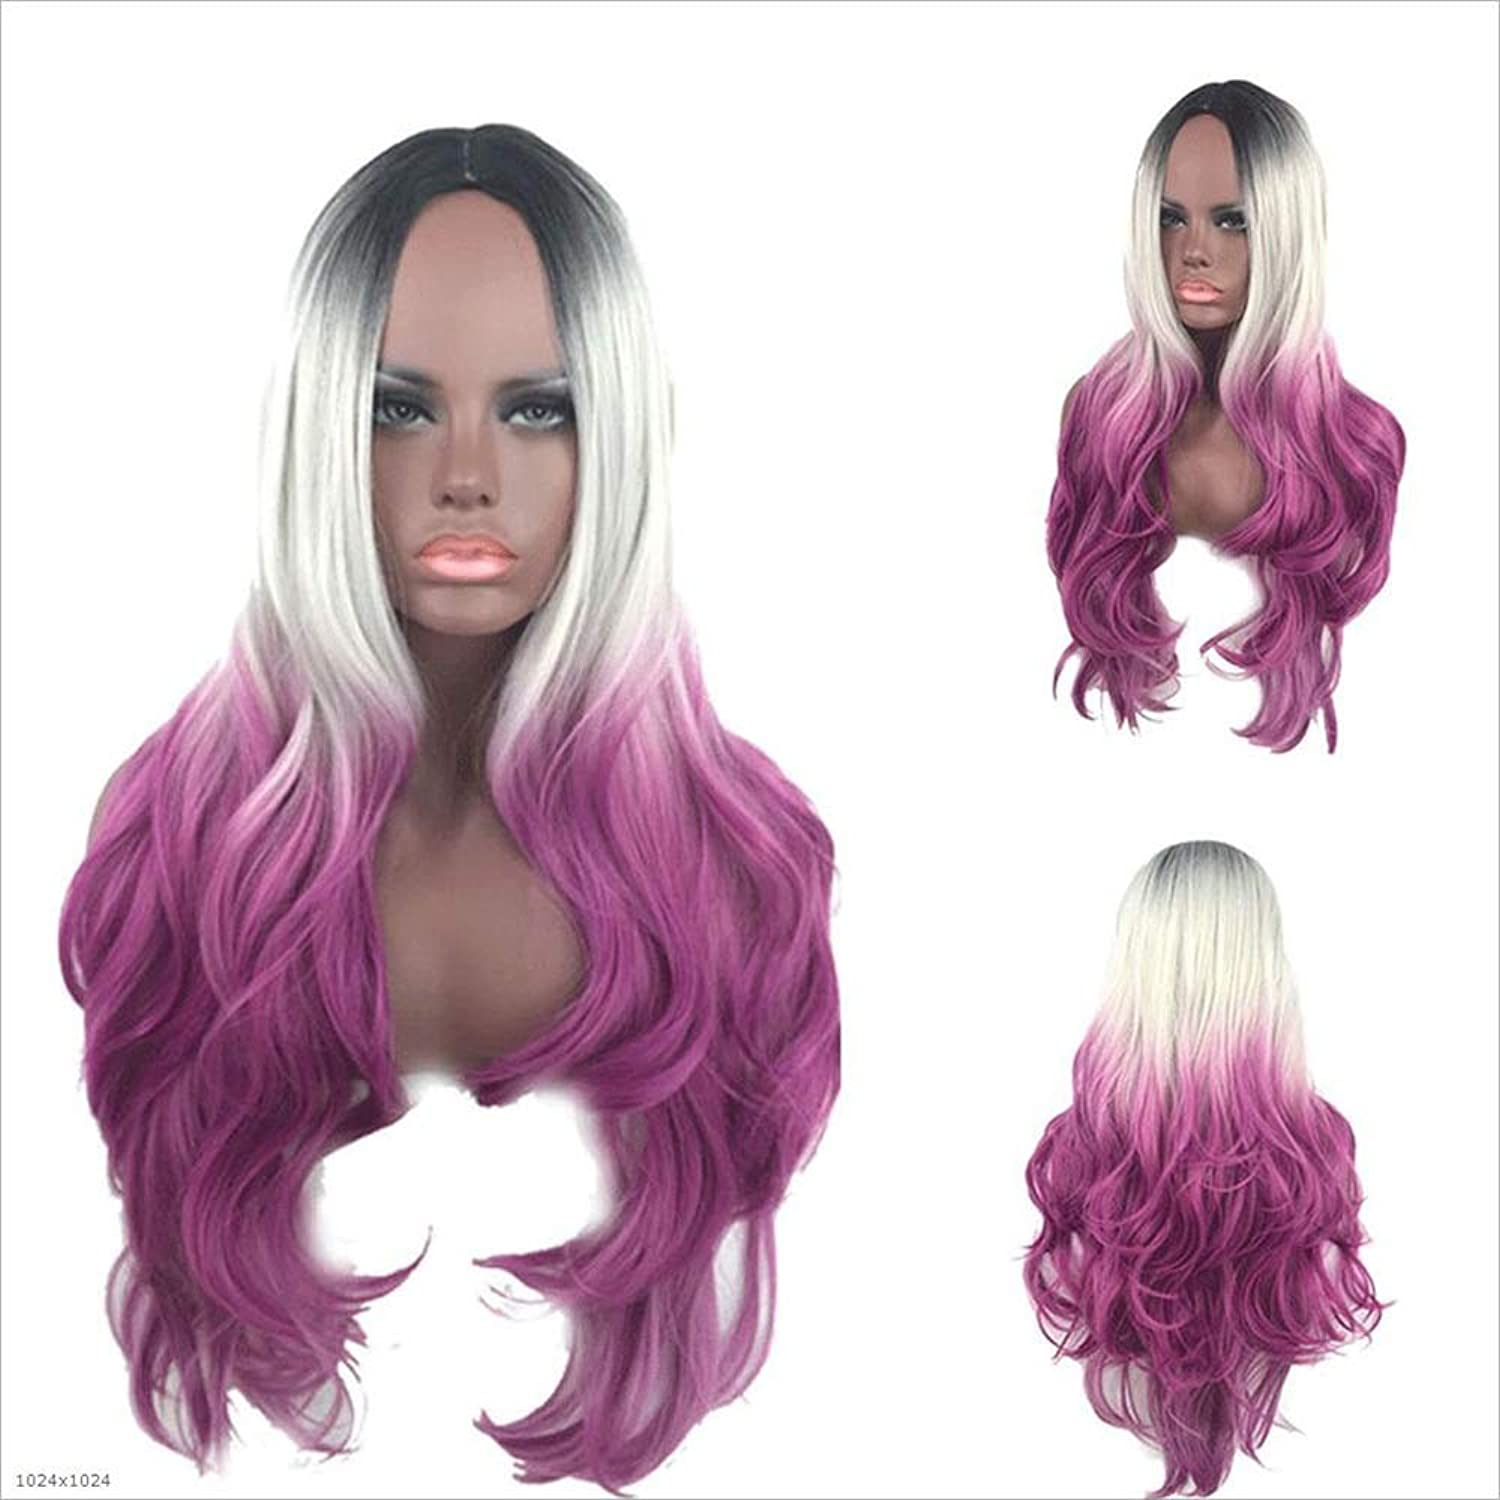 MYMAO Wig Female Cosplay Gradient Long Curly Hair Dyed pink Net